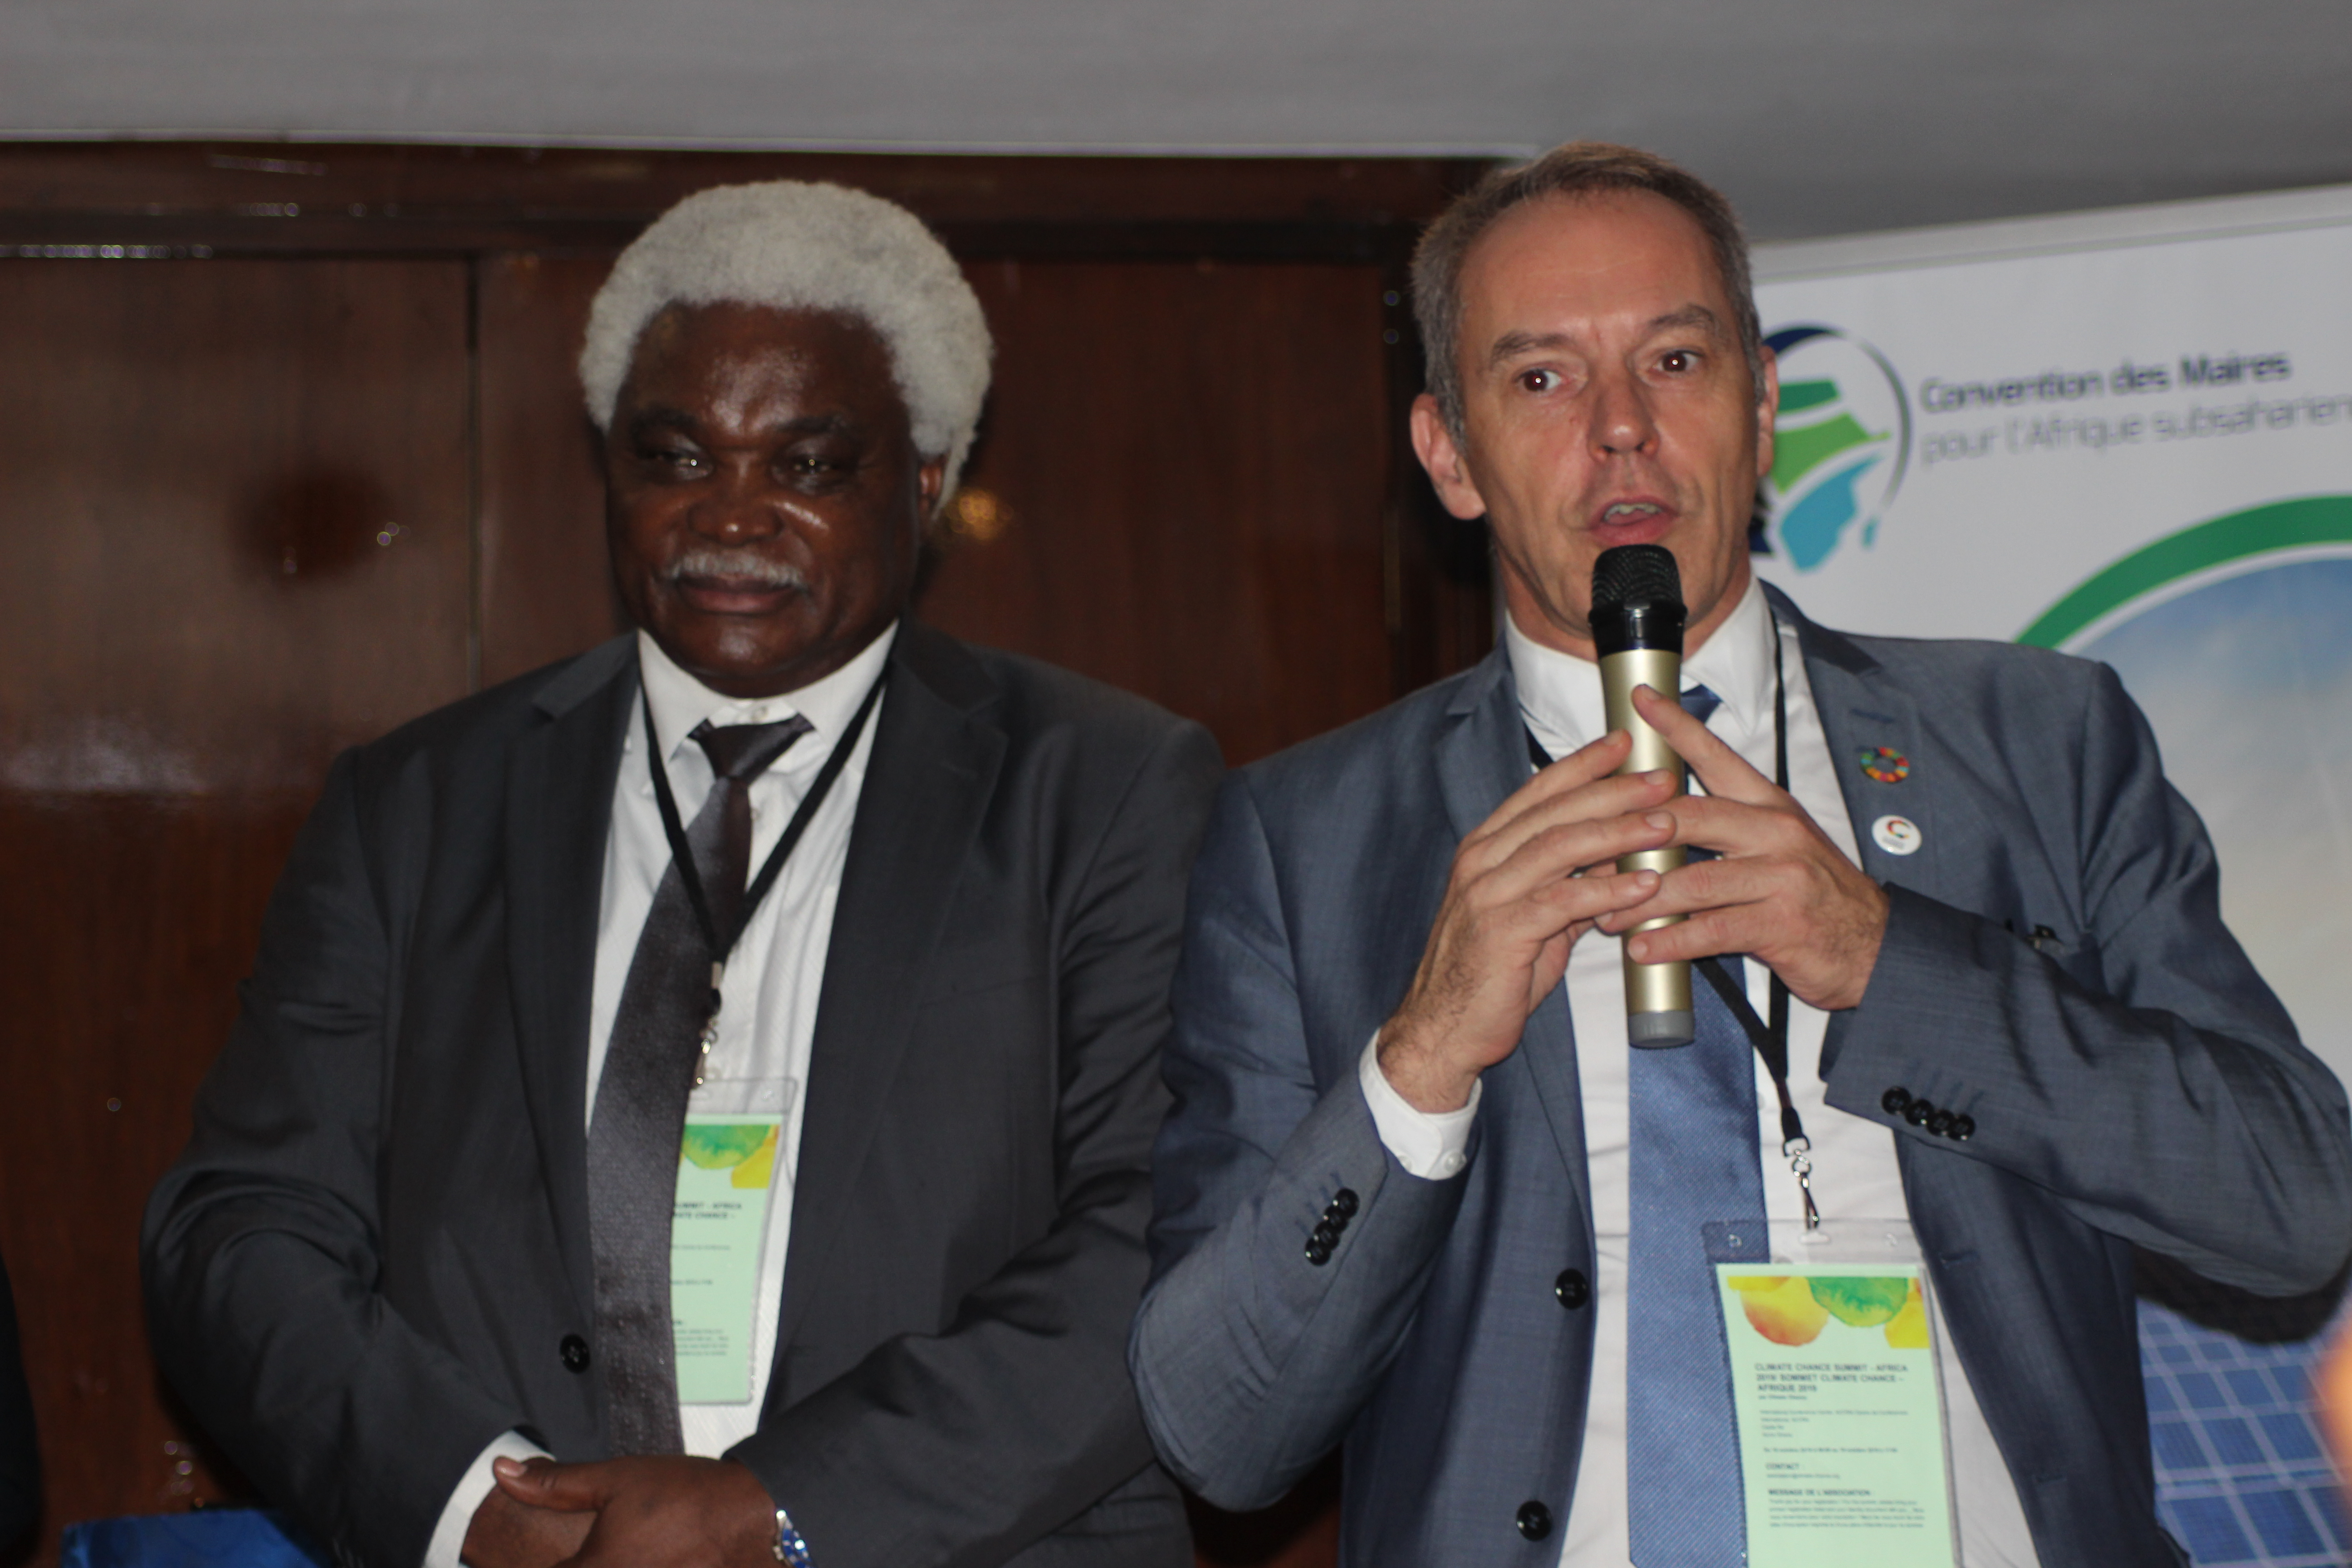 Jean Pierre Elong Mbassi, Secretary General of the United Cities and Local Governments of Africa- UCLG and Frédéric Vallier Secretary General at Council of European Municipalities and Regions-CEMR